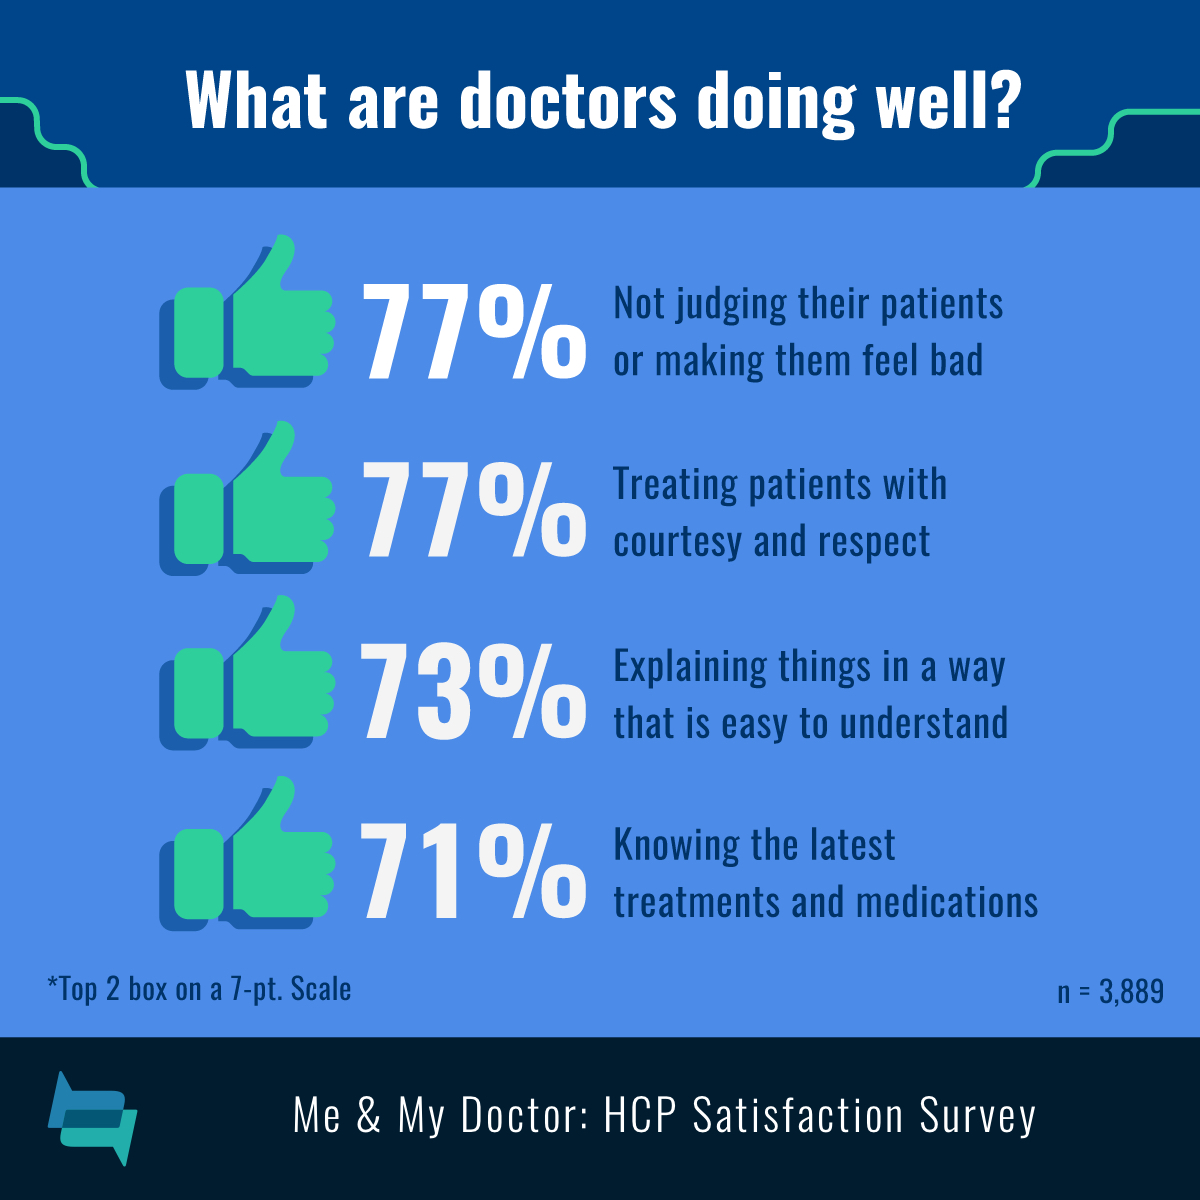 Doctors not judging patients (77%), treating with respect (77%), explaining well (73%), and knowing new treatments (71%).